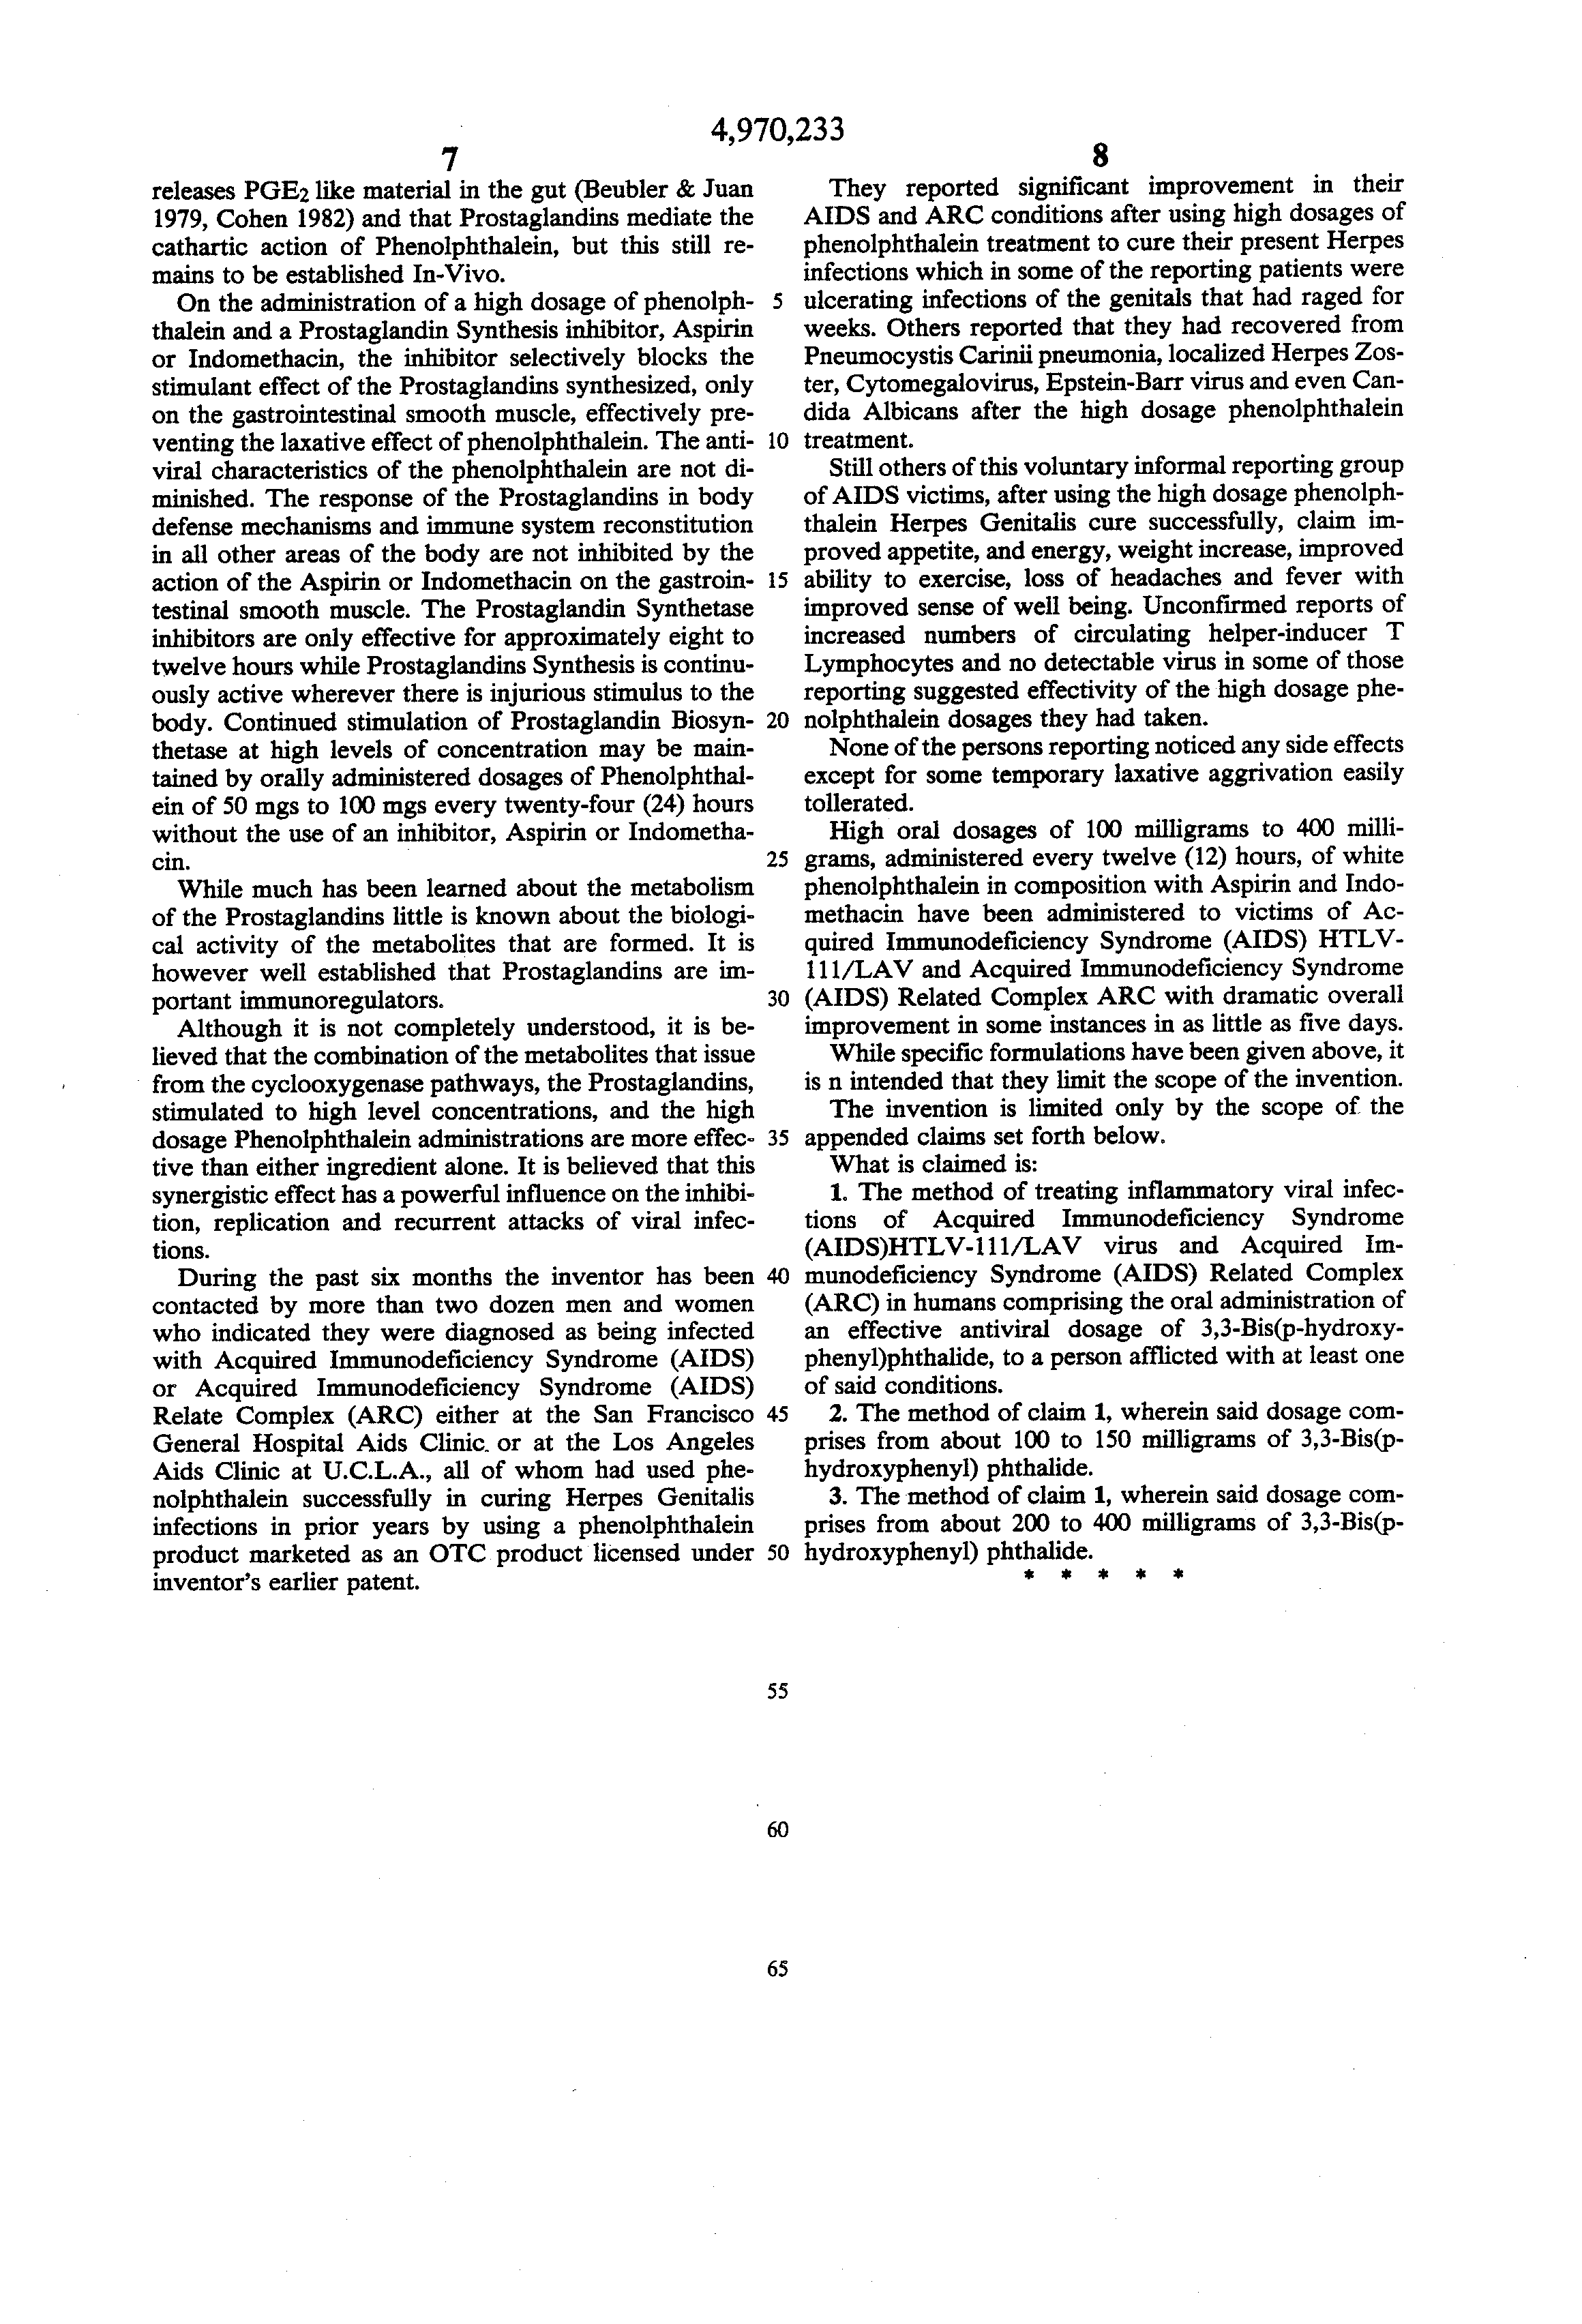 Patent US4970233 - Treatment of Acquired Immunodeficiency ...